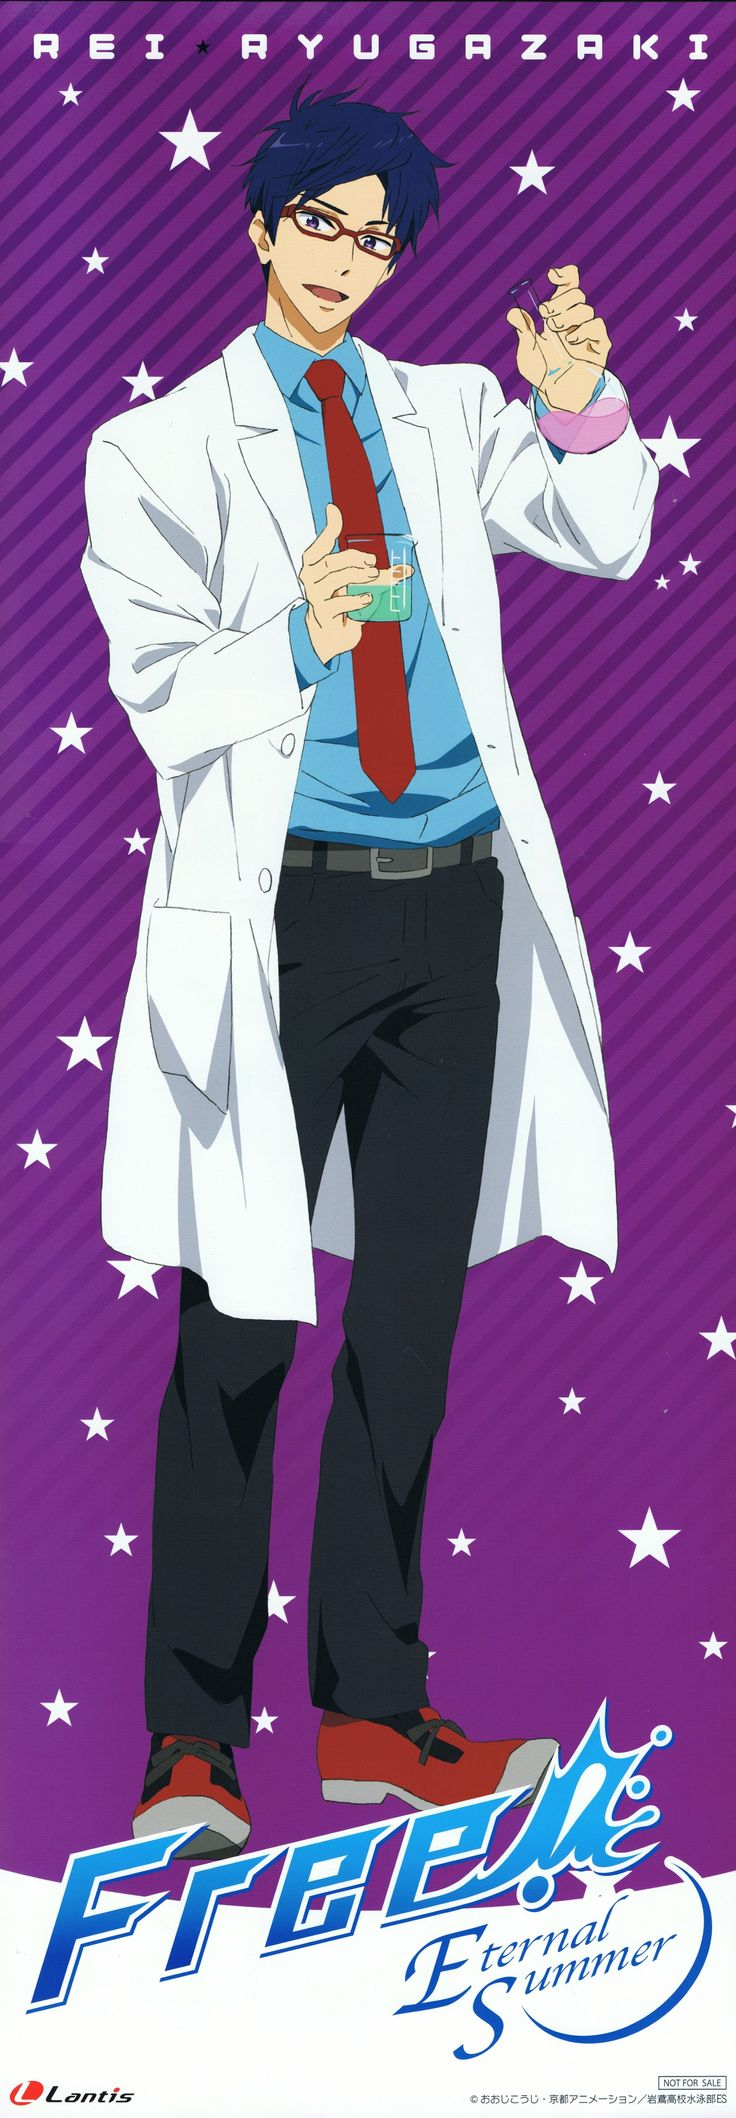 He looks BEAUTIFUL ( ͡° ͜ʖ ͡°) in that lab coat.. sorry